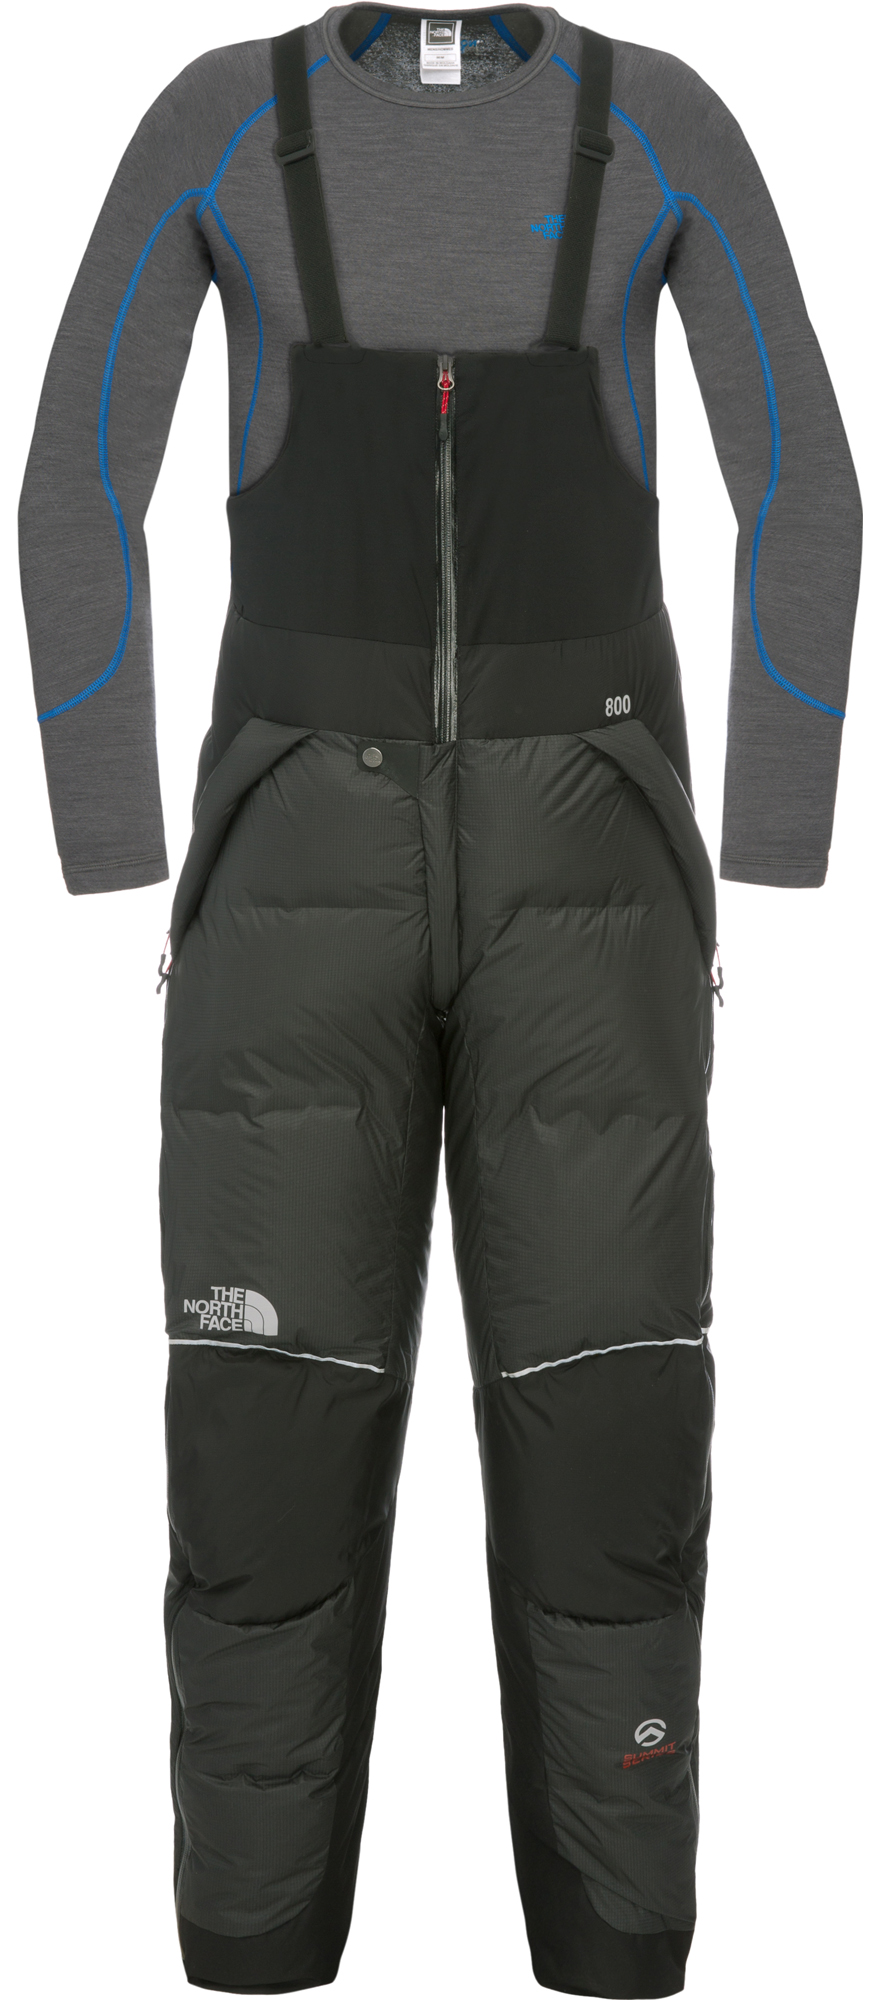 The North Face Брюки утепленные мужские The North Face Himalayan the north face брюки мужские the north face resolve